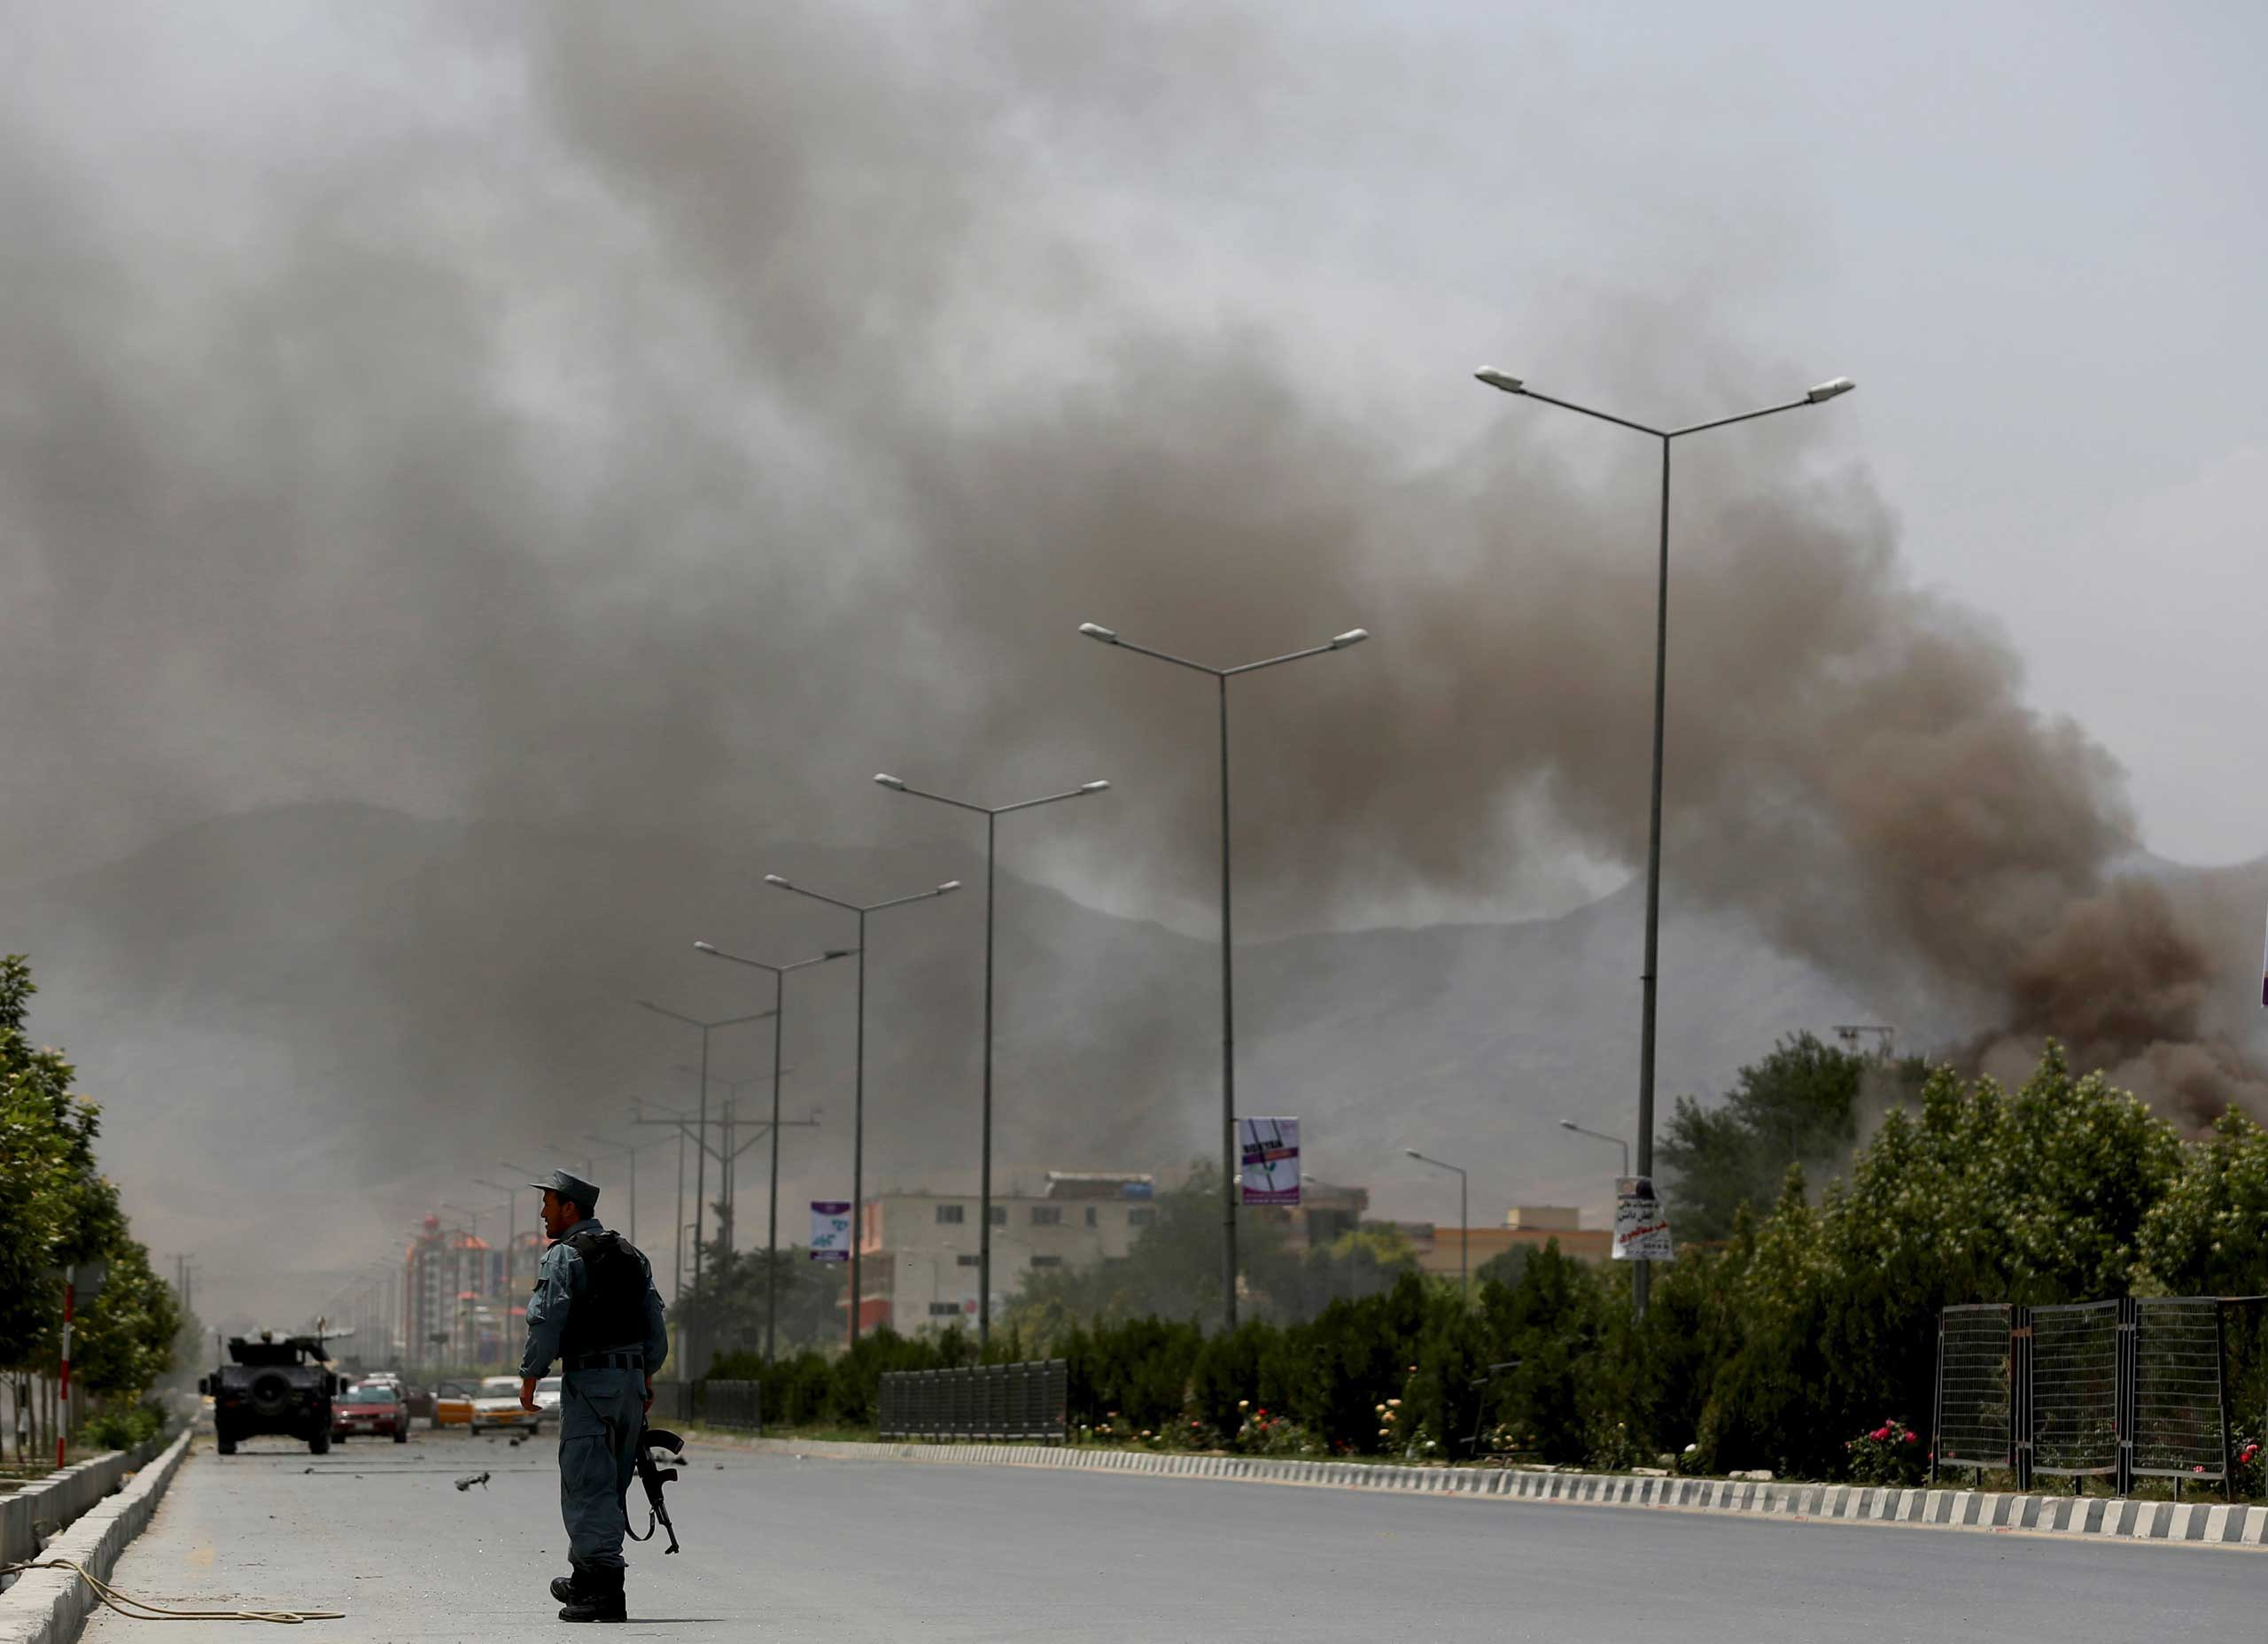 A policeman stands close to the site of an attack as smoke billows in the sky, near the Afghan Parliament in Kabul, Afghanistan on June 22, 2015.